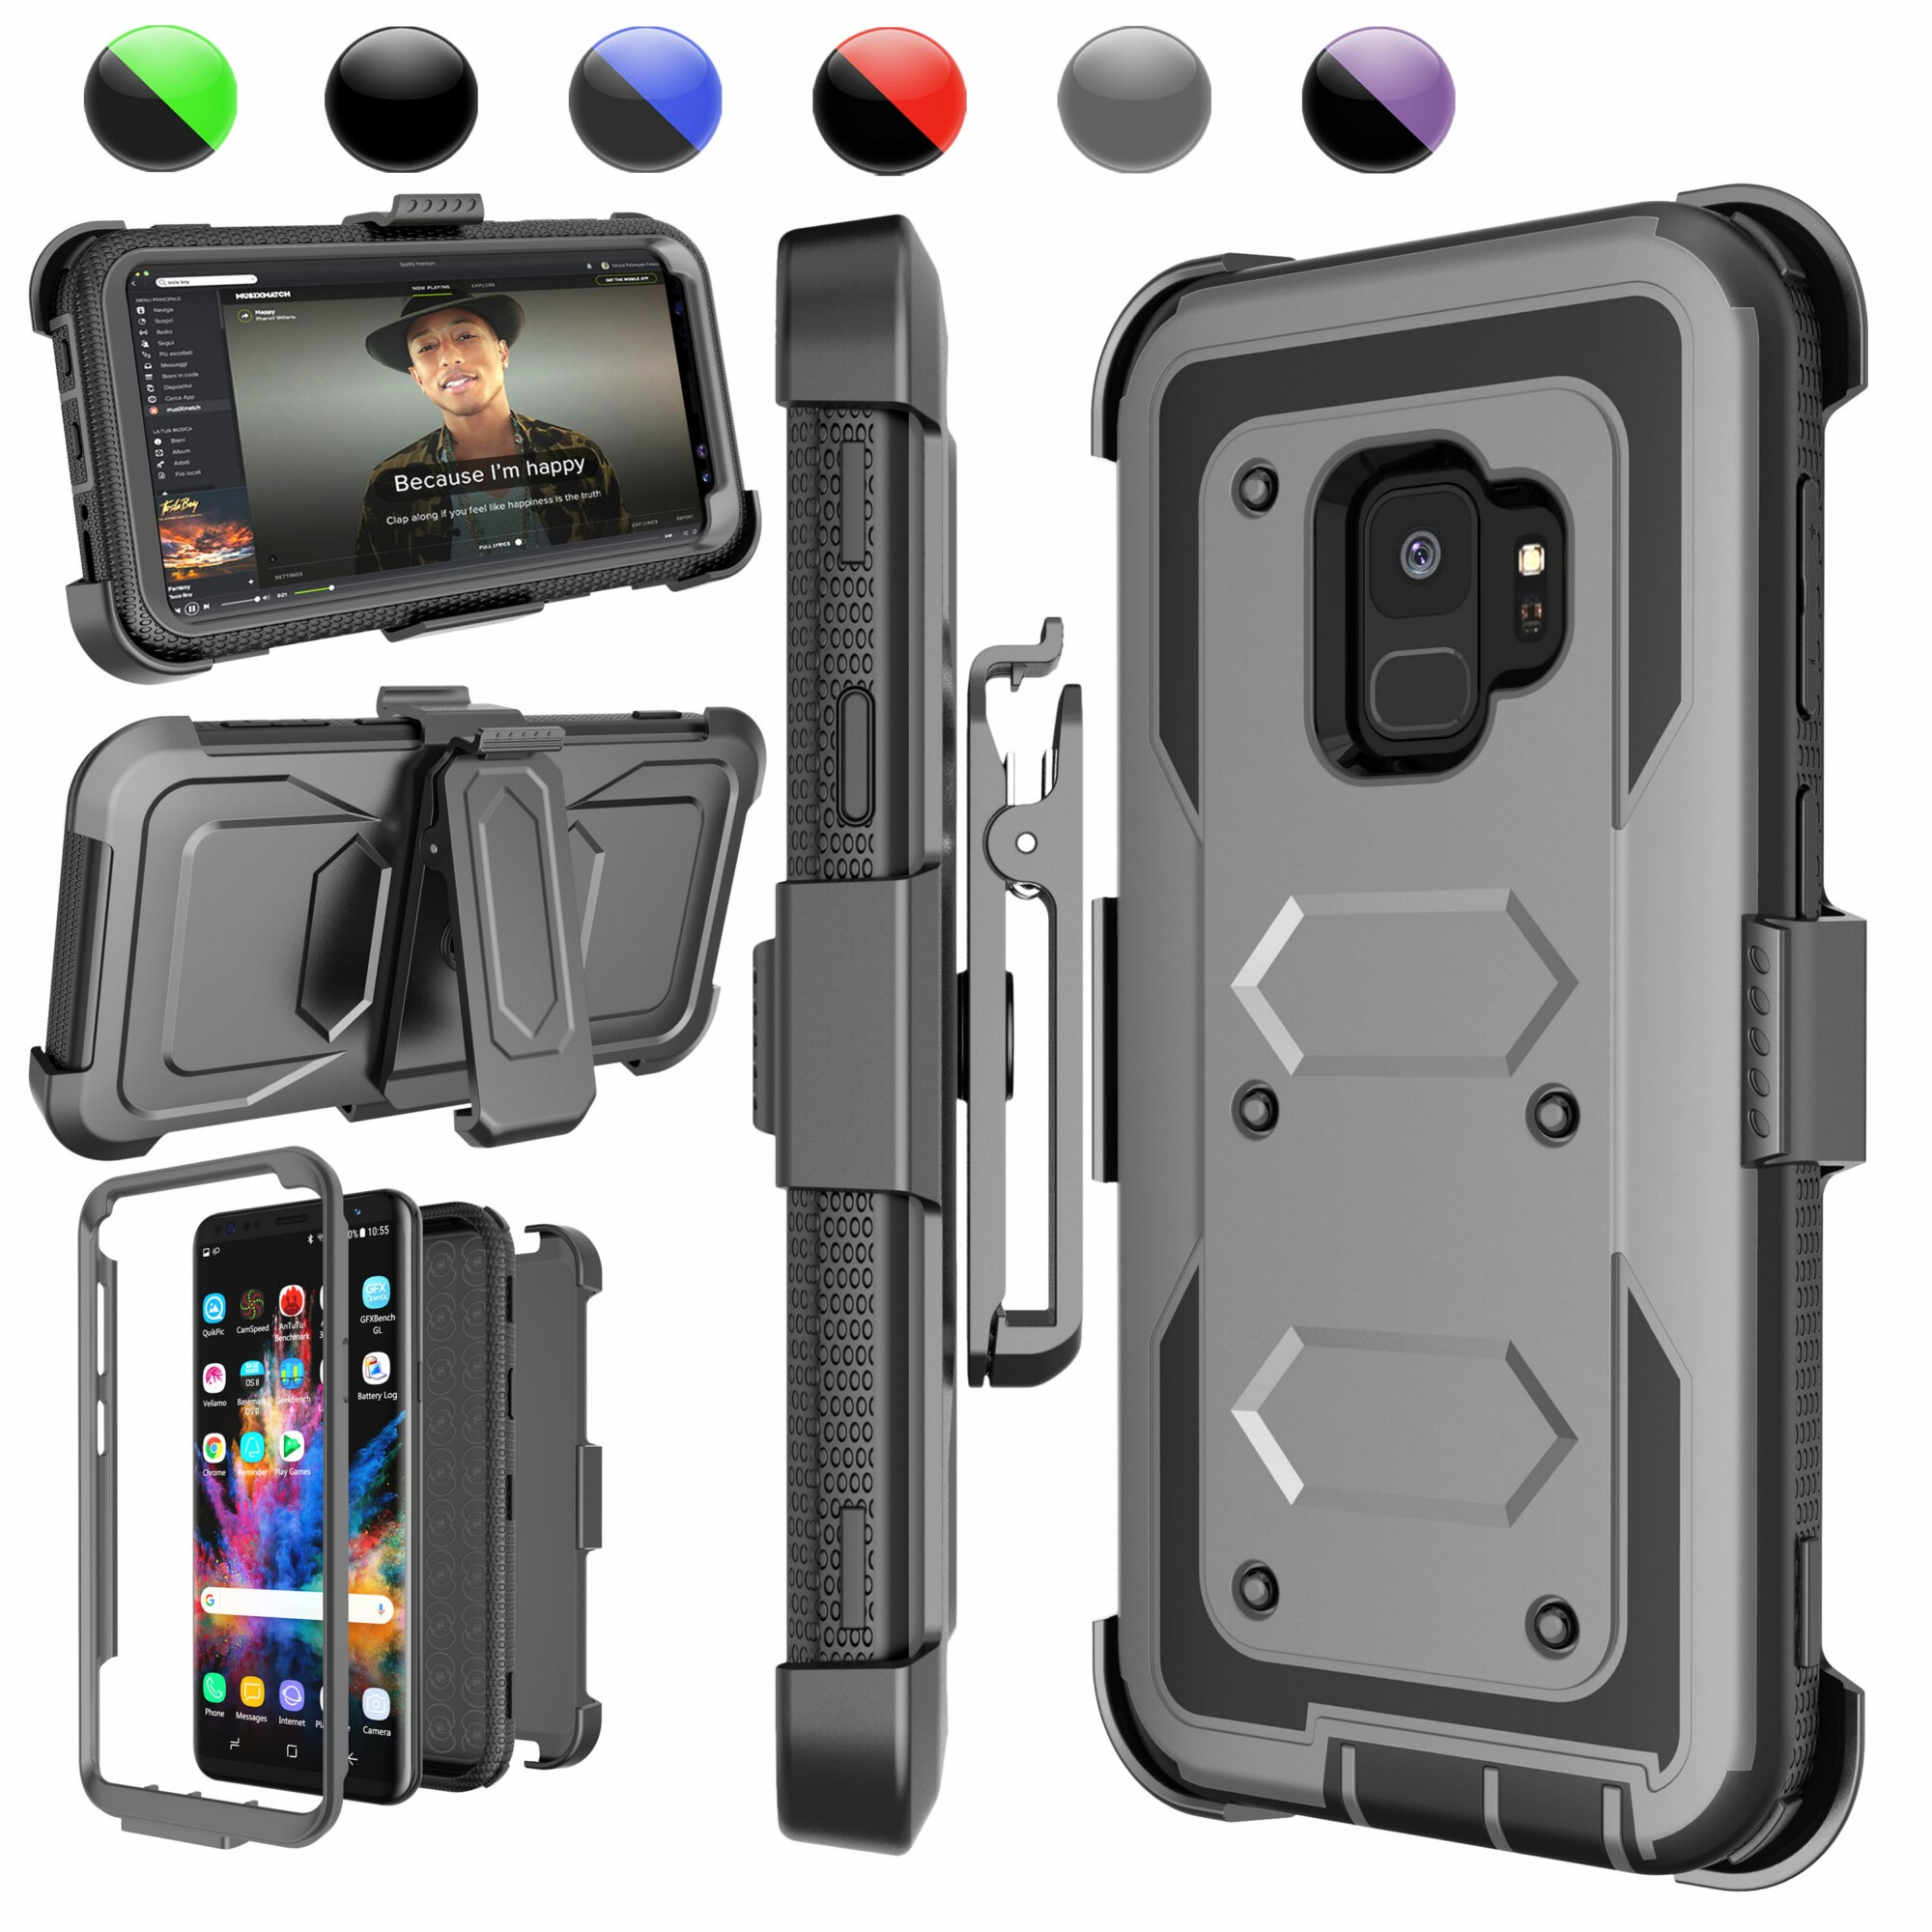 """Galaxy S9 Case, Galaxy S9 Holster Belt, Samsung S9 Clip, Njjex Full-body Rugged with Kickstand + Holster Belt Clip Carrying Armor Case Cover For Samsung Galaxy S9 5.8 """"[Ash Gray]"""